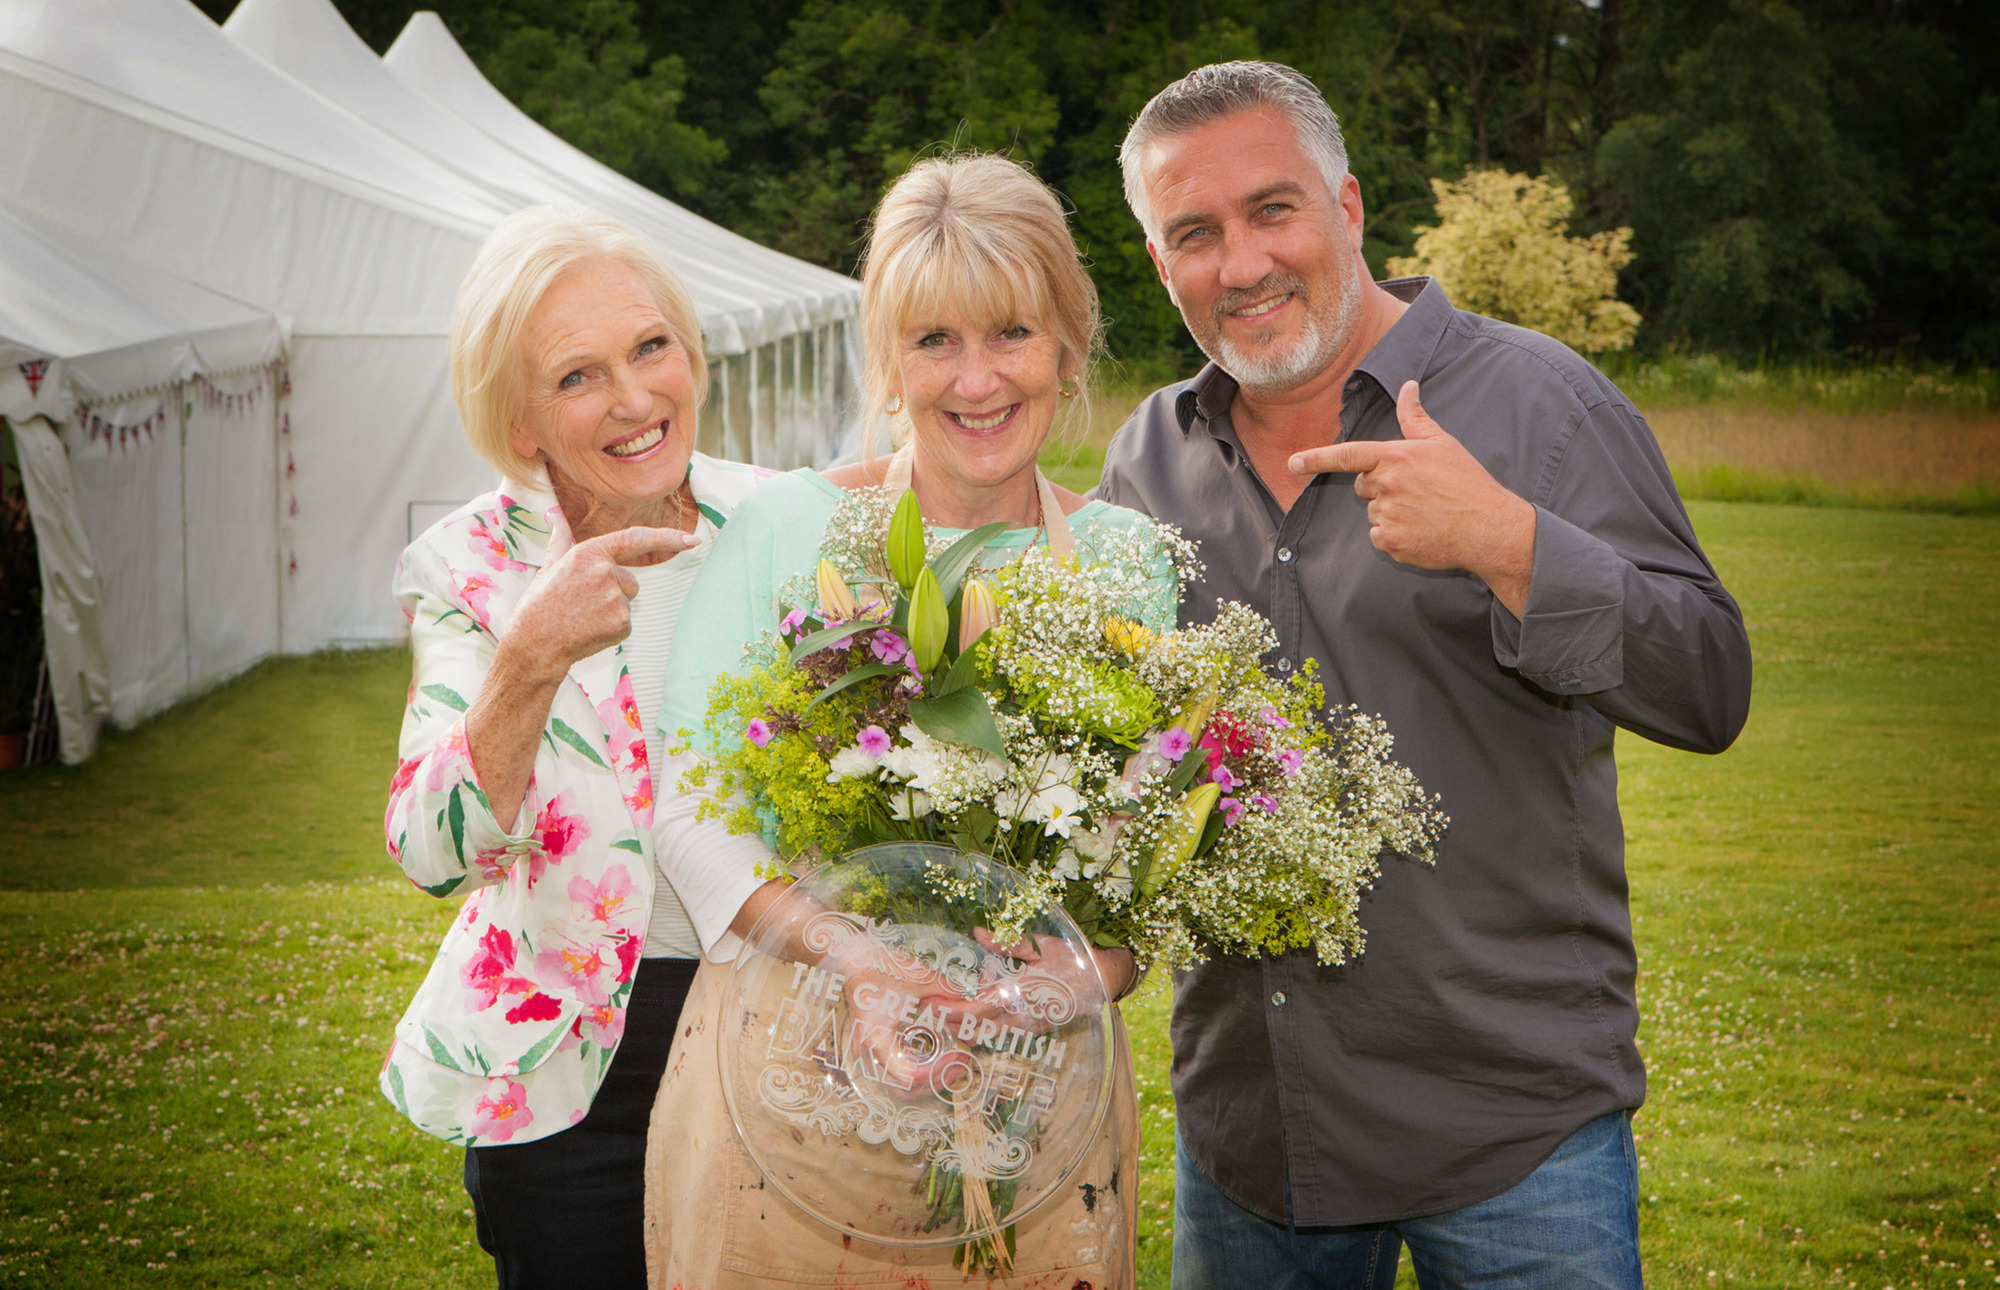 Mary Berry, Nancy Birtwhistle and Paul Hollywood in The Great British Bake Off